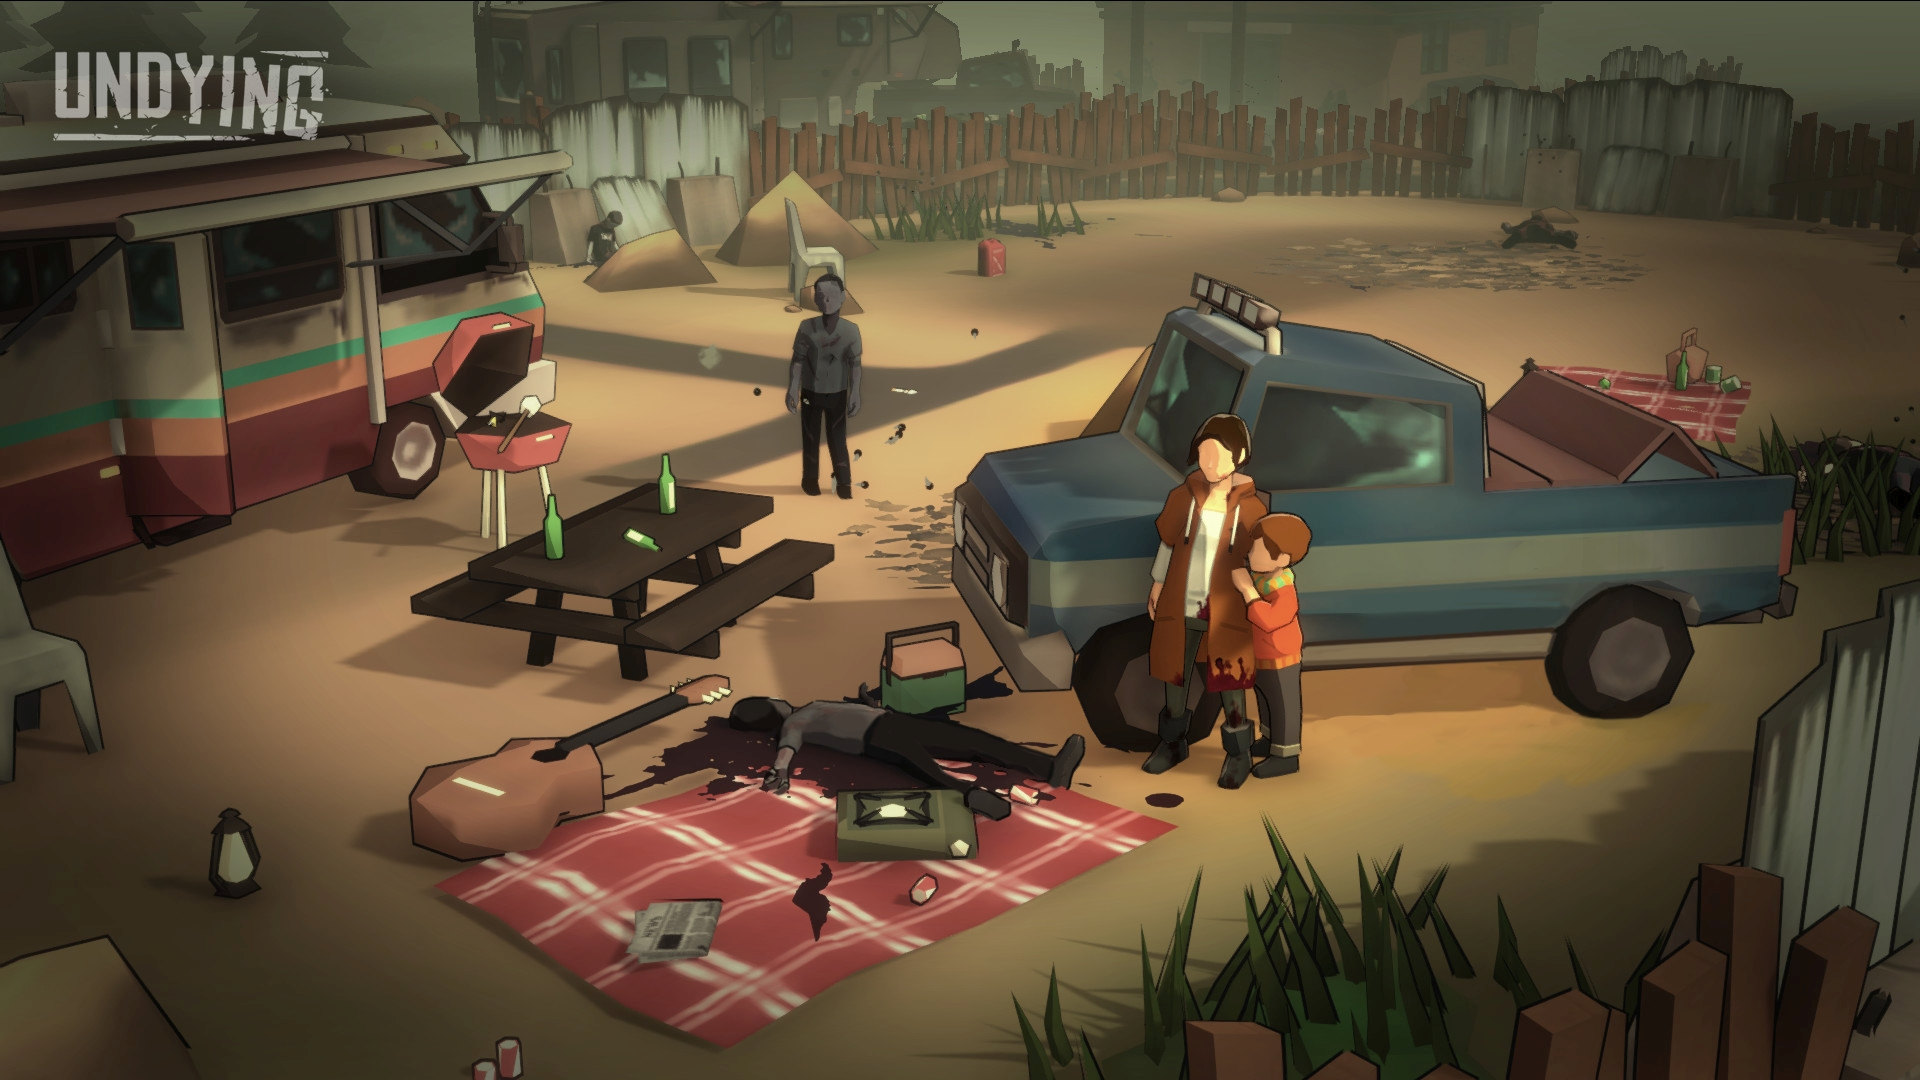 Zombie Survival Game Undying Heads To Early Access Soon With Plans For Mobile Release